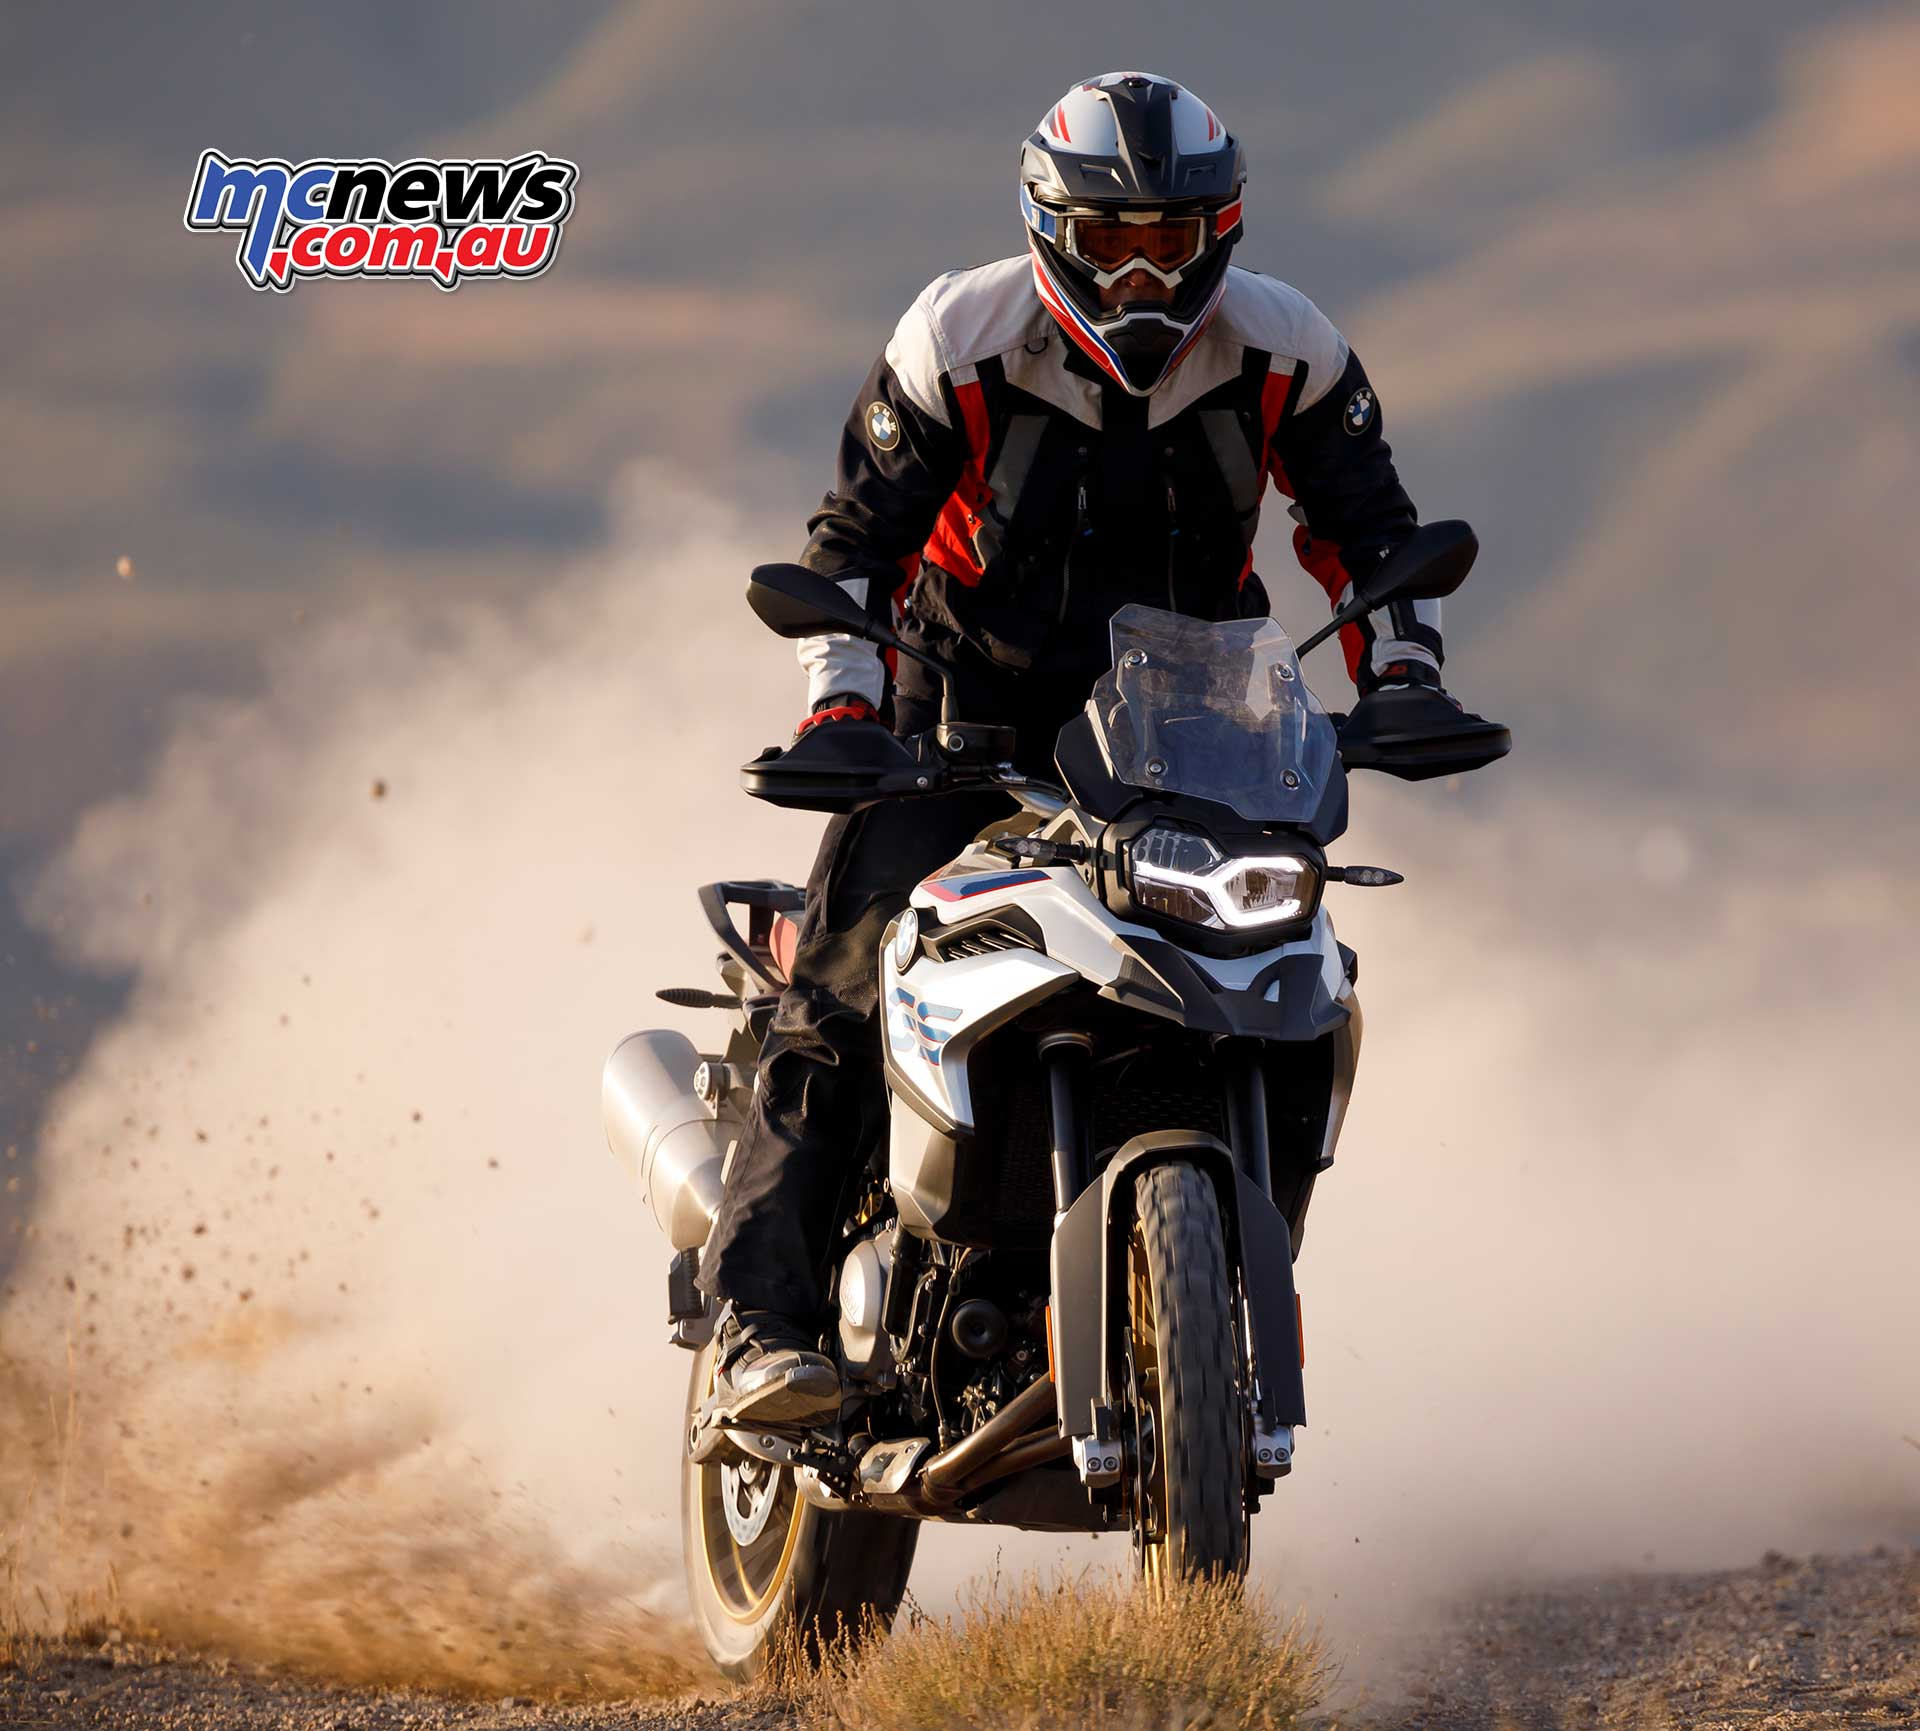 2018: BMW F 750 GS And F 850 GS Pricing